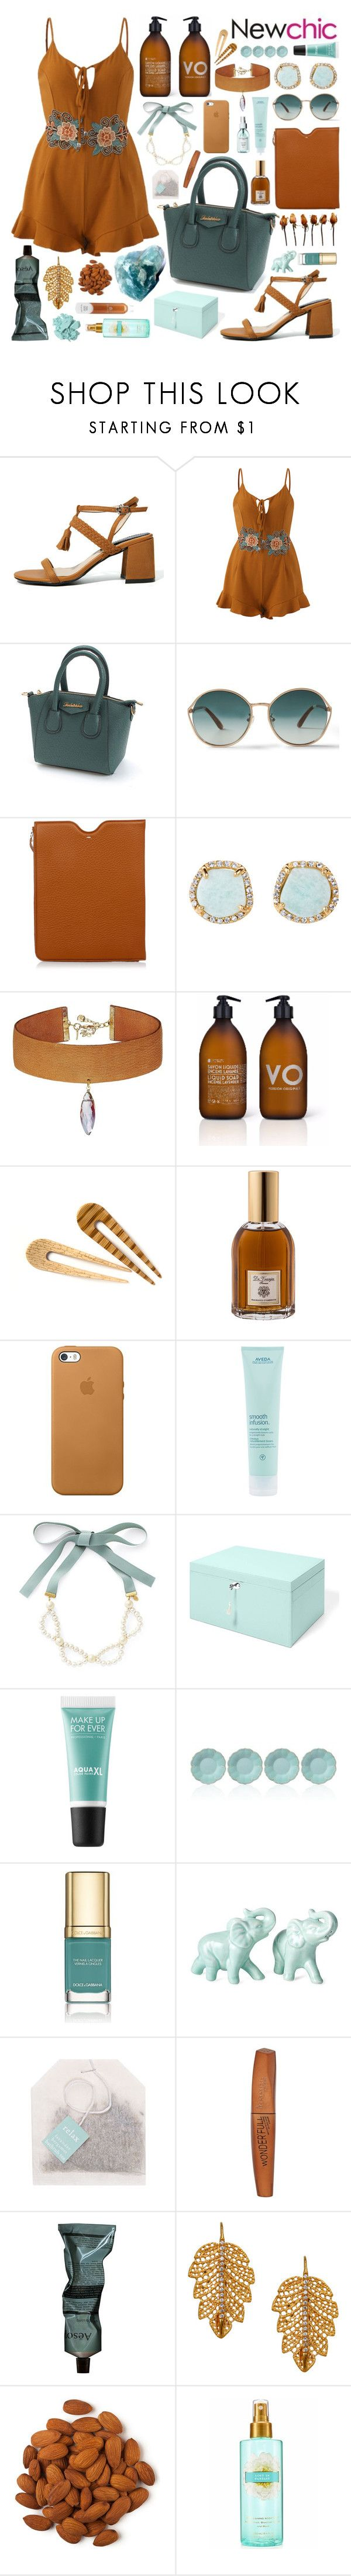 """""""trouble is a friend and trouble is a foe // fashion set + Newchic Anniversary SALE !!!"""" by gabriella-houck on Polyvore featuring TOMS, Maison Margiela, Louise et Cie, Vanessa Mooney, La Compagnie de Provence, Dr. Vranjes, Aveda, MAKE UP FOR EVER, Lenox and Dolce&Gabbana"""